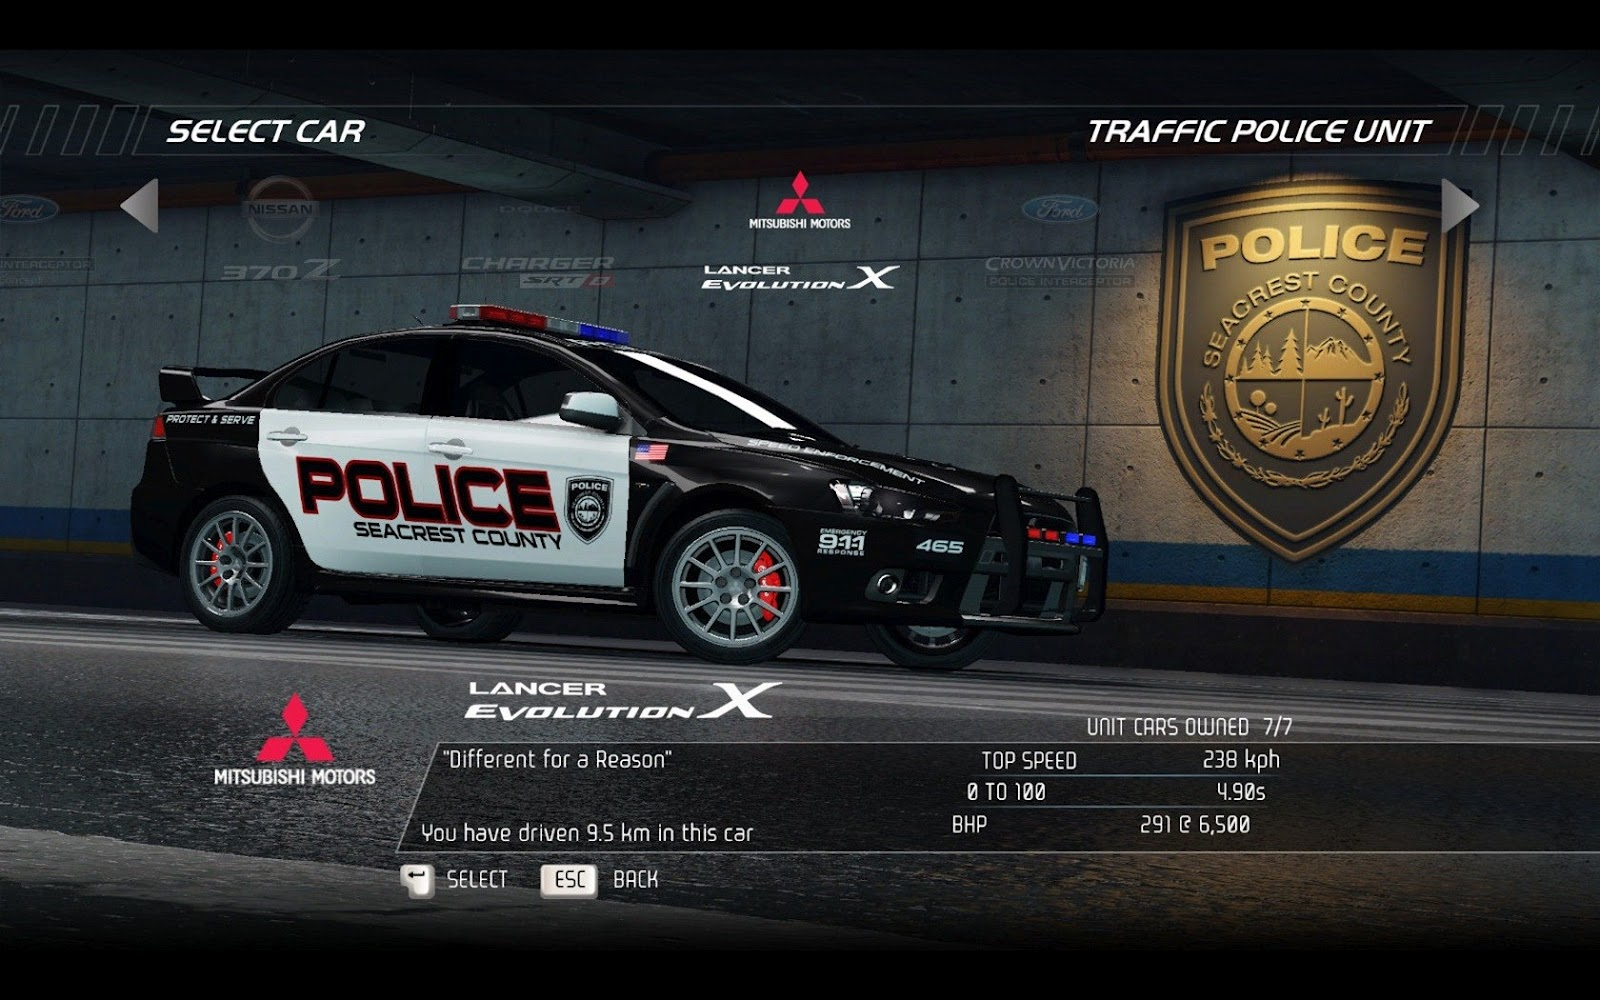 http://2.bp.blogspot.com/-Oni_pSxRQ0M/T4Wr65XvxlI/AAAAAAAABSY/eYc6HR0a2Sw/s1600/NFS_Hot_Pursuit_Mistsubishi_Lancer_Police_Car_HD_Game_Wallpaper-gWb.jpg